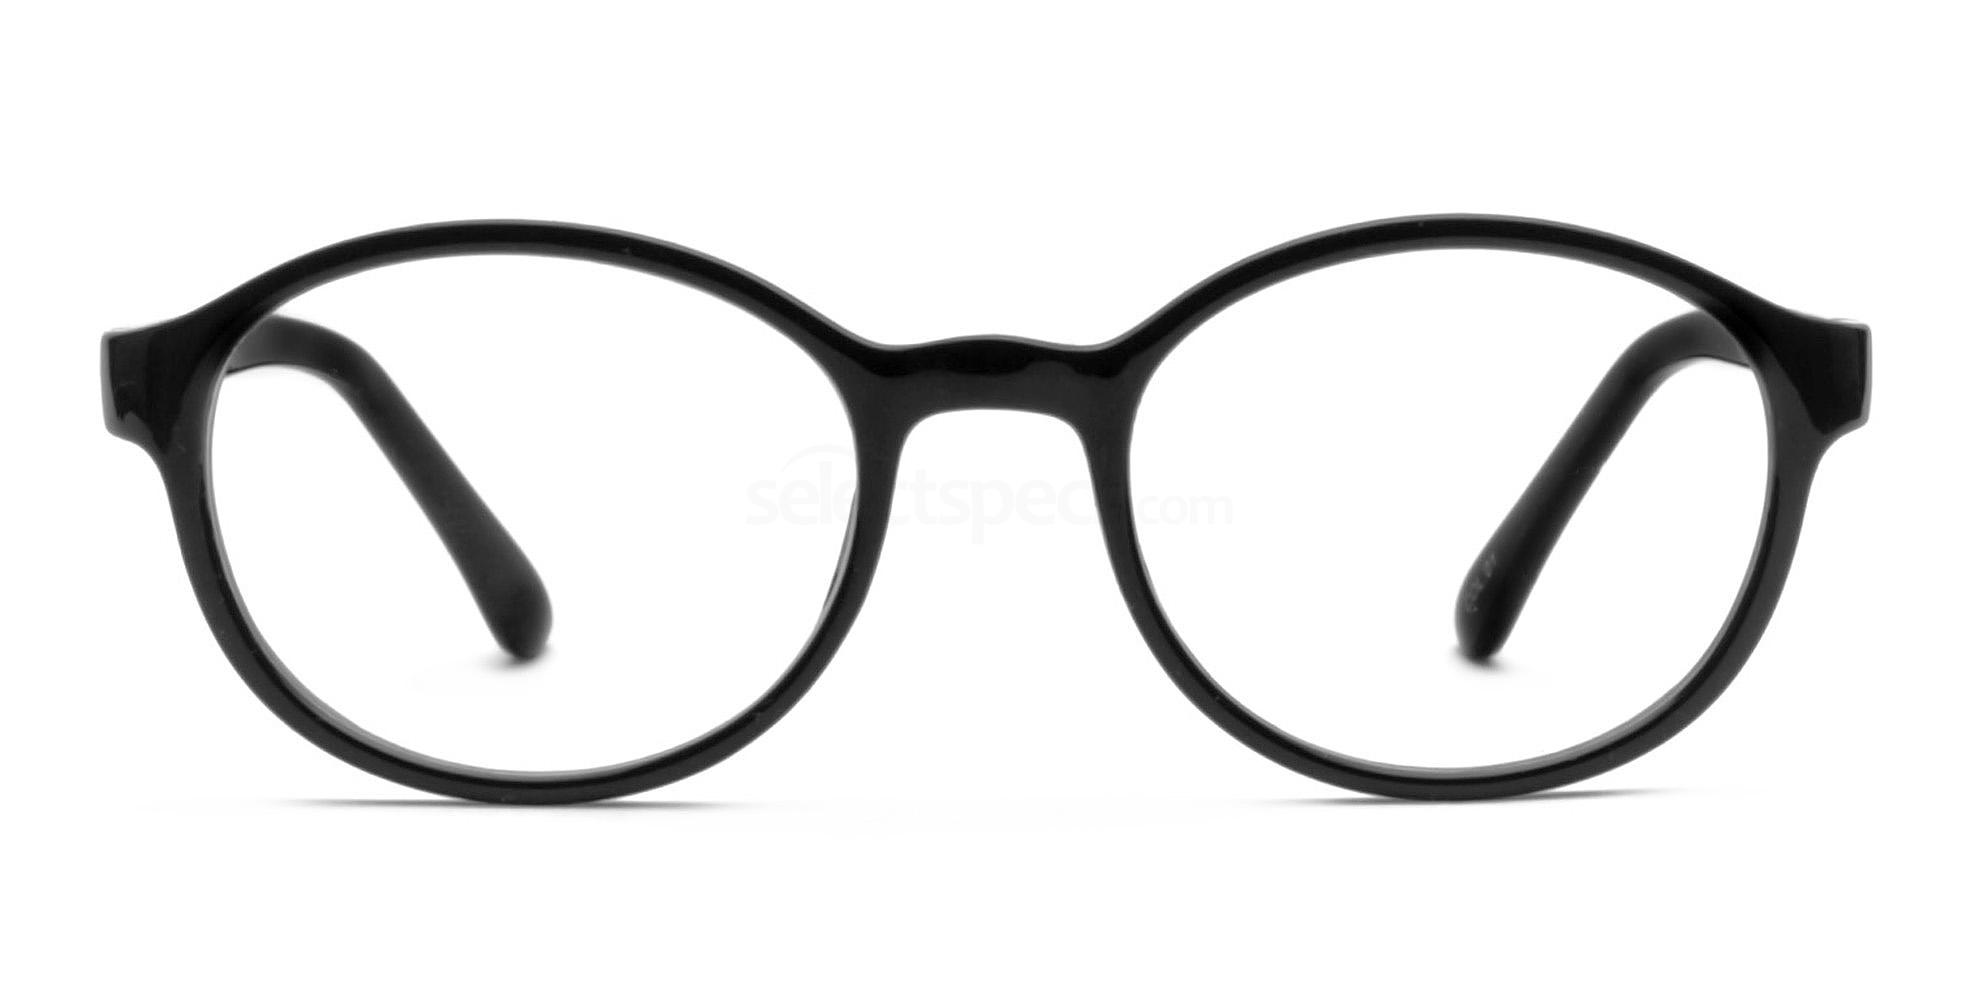 Round-Harry-Potter-Like-Glasses